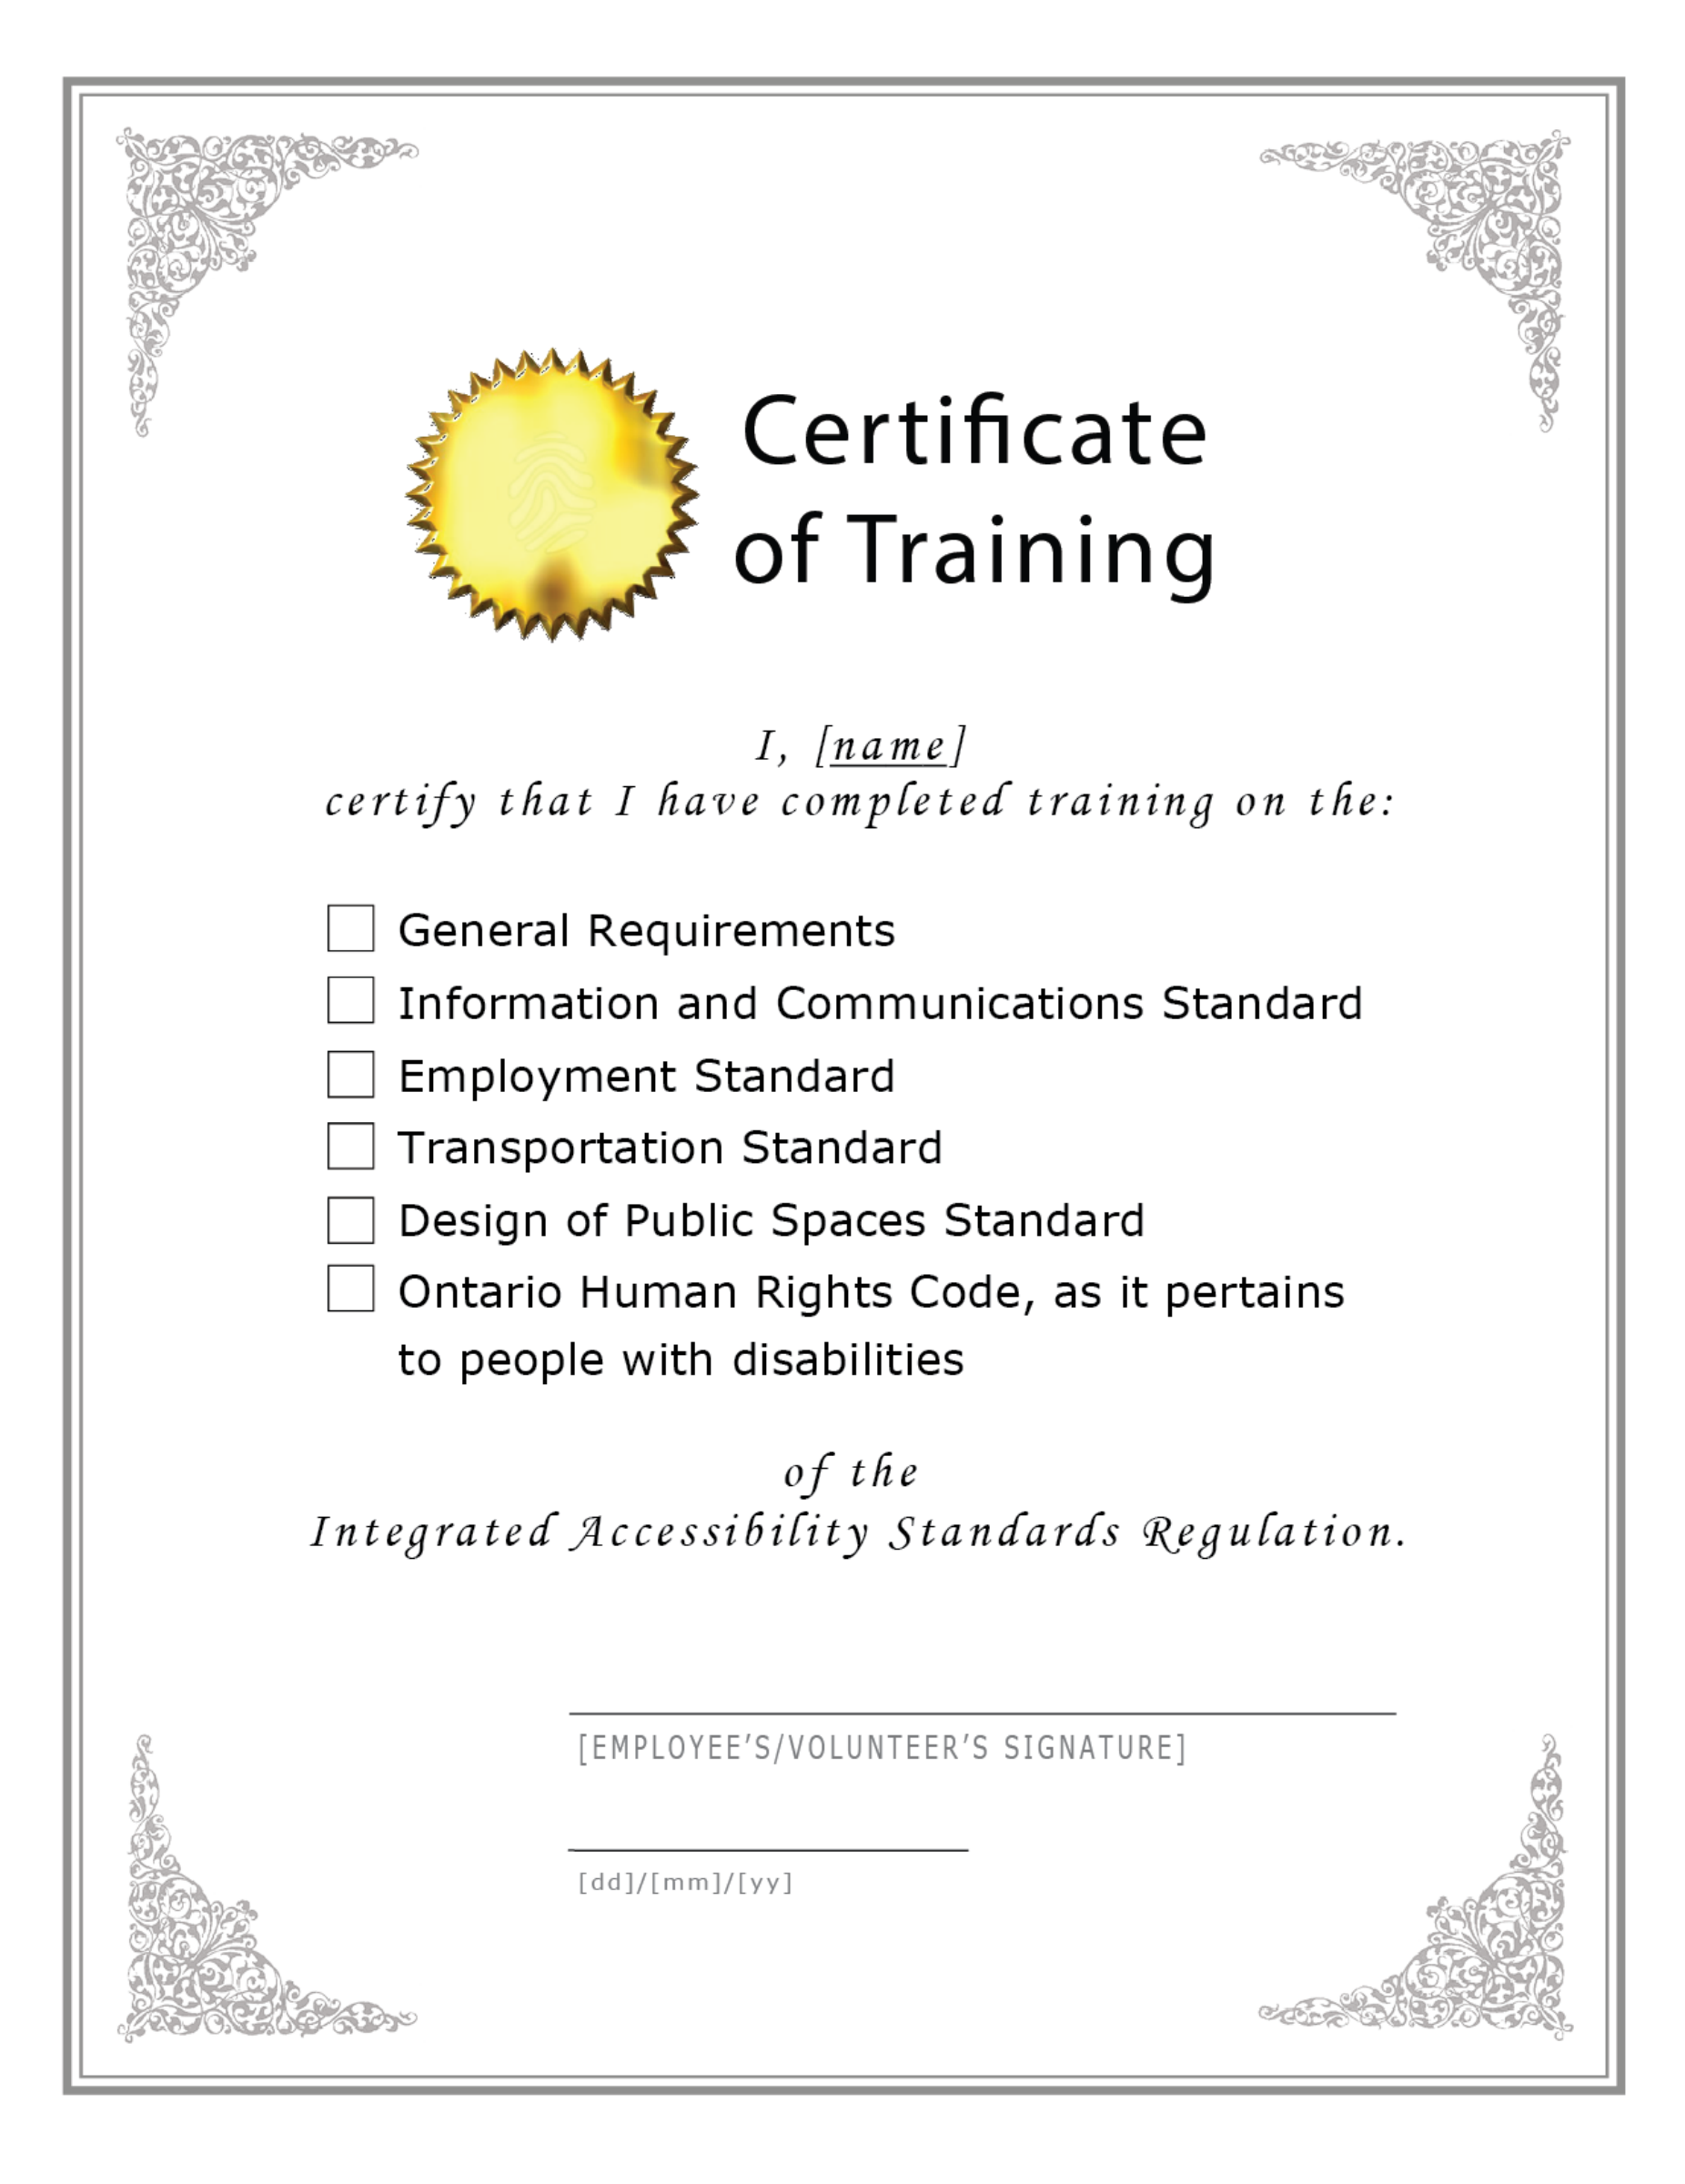 blank sample certificate of training free download